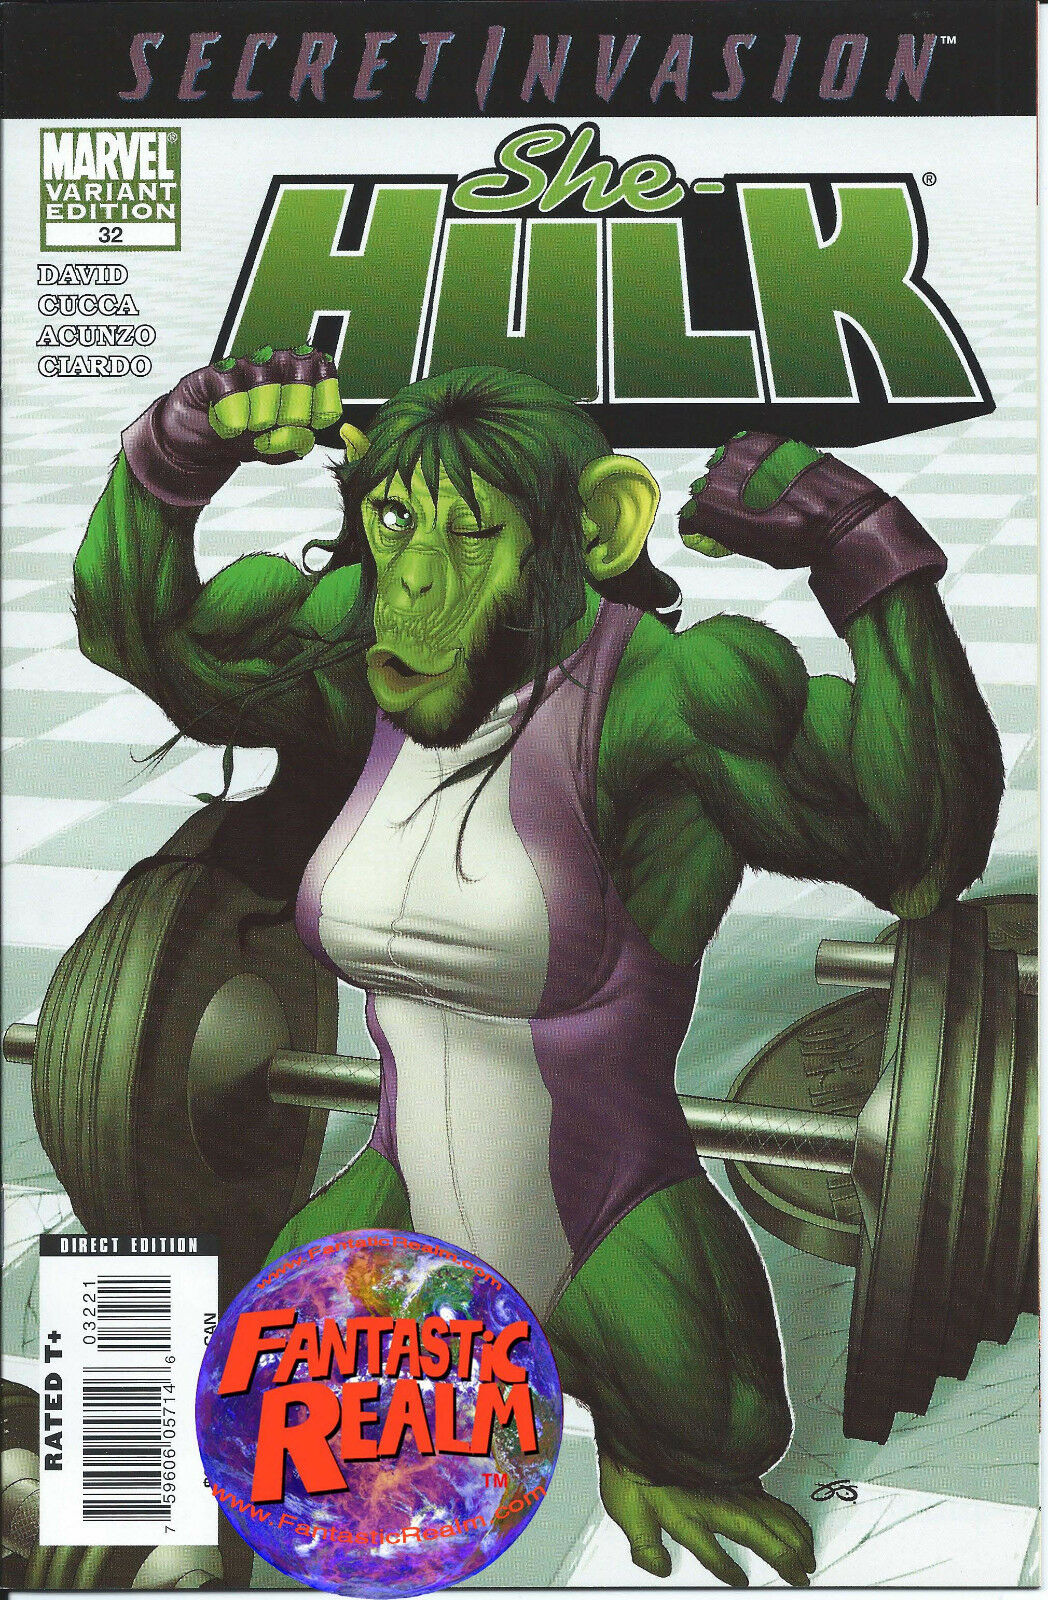 SECRET INVASION SHE HULK #32 FRANK CHO 1:10 MONKEY VARIANT MARVEL COMICS